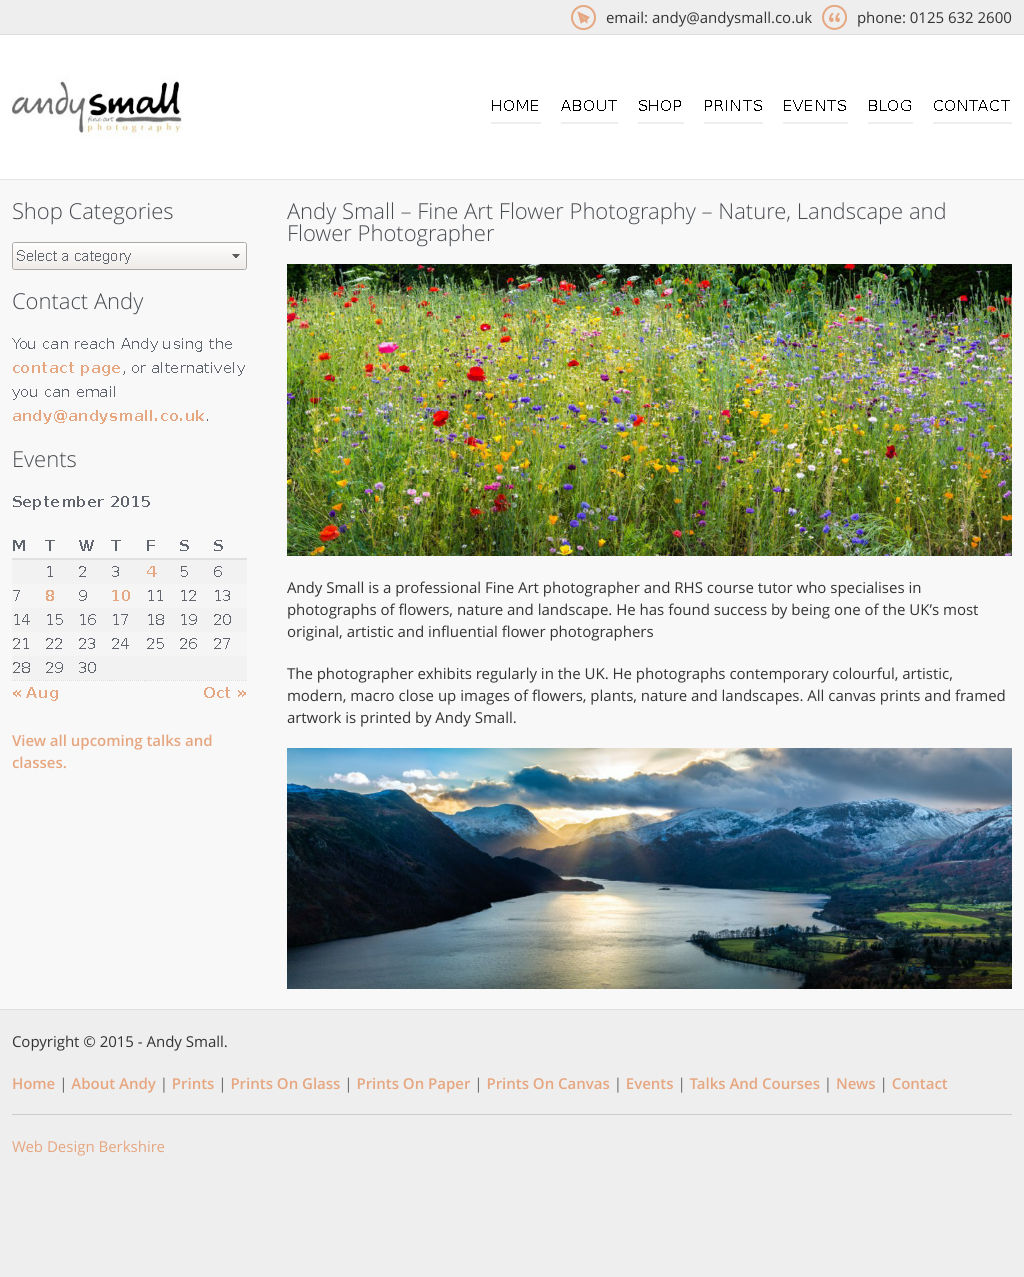 andy-small-web-design-berkshire-portfolio